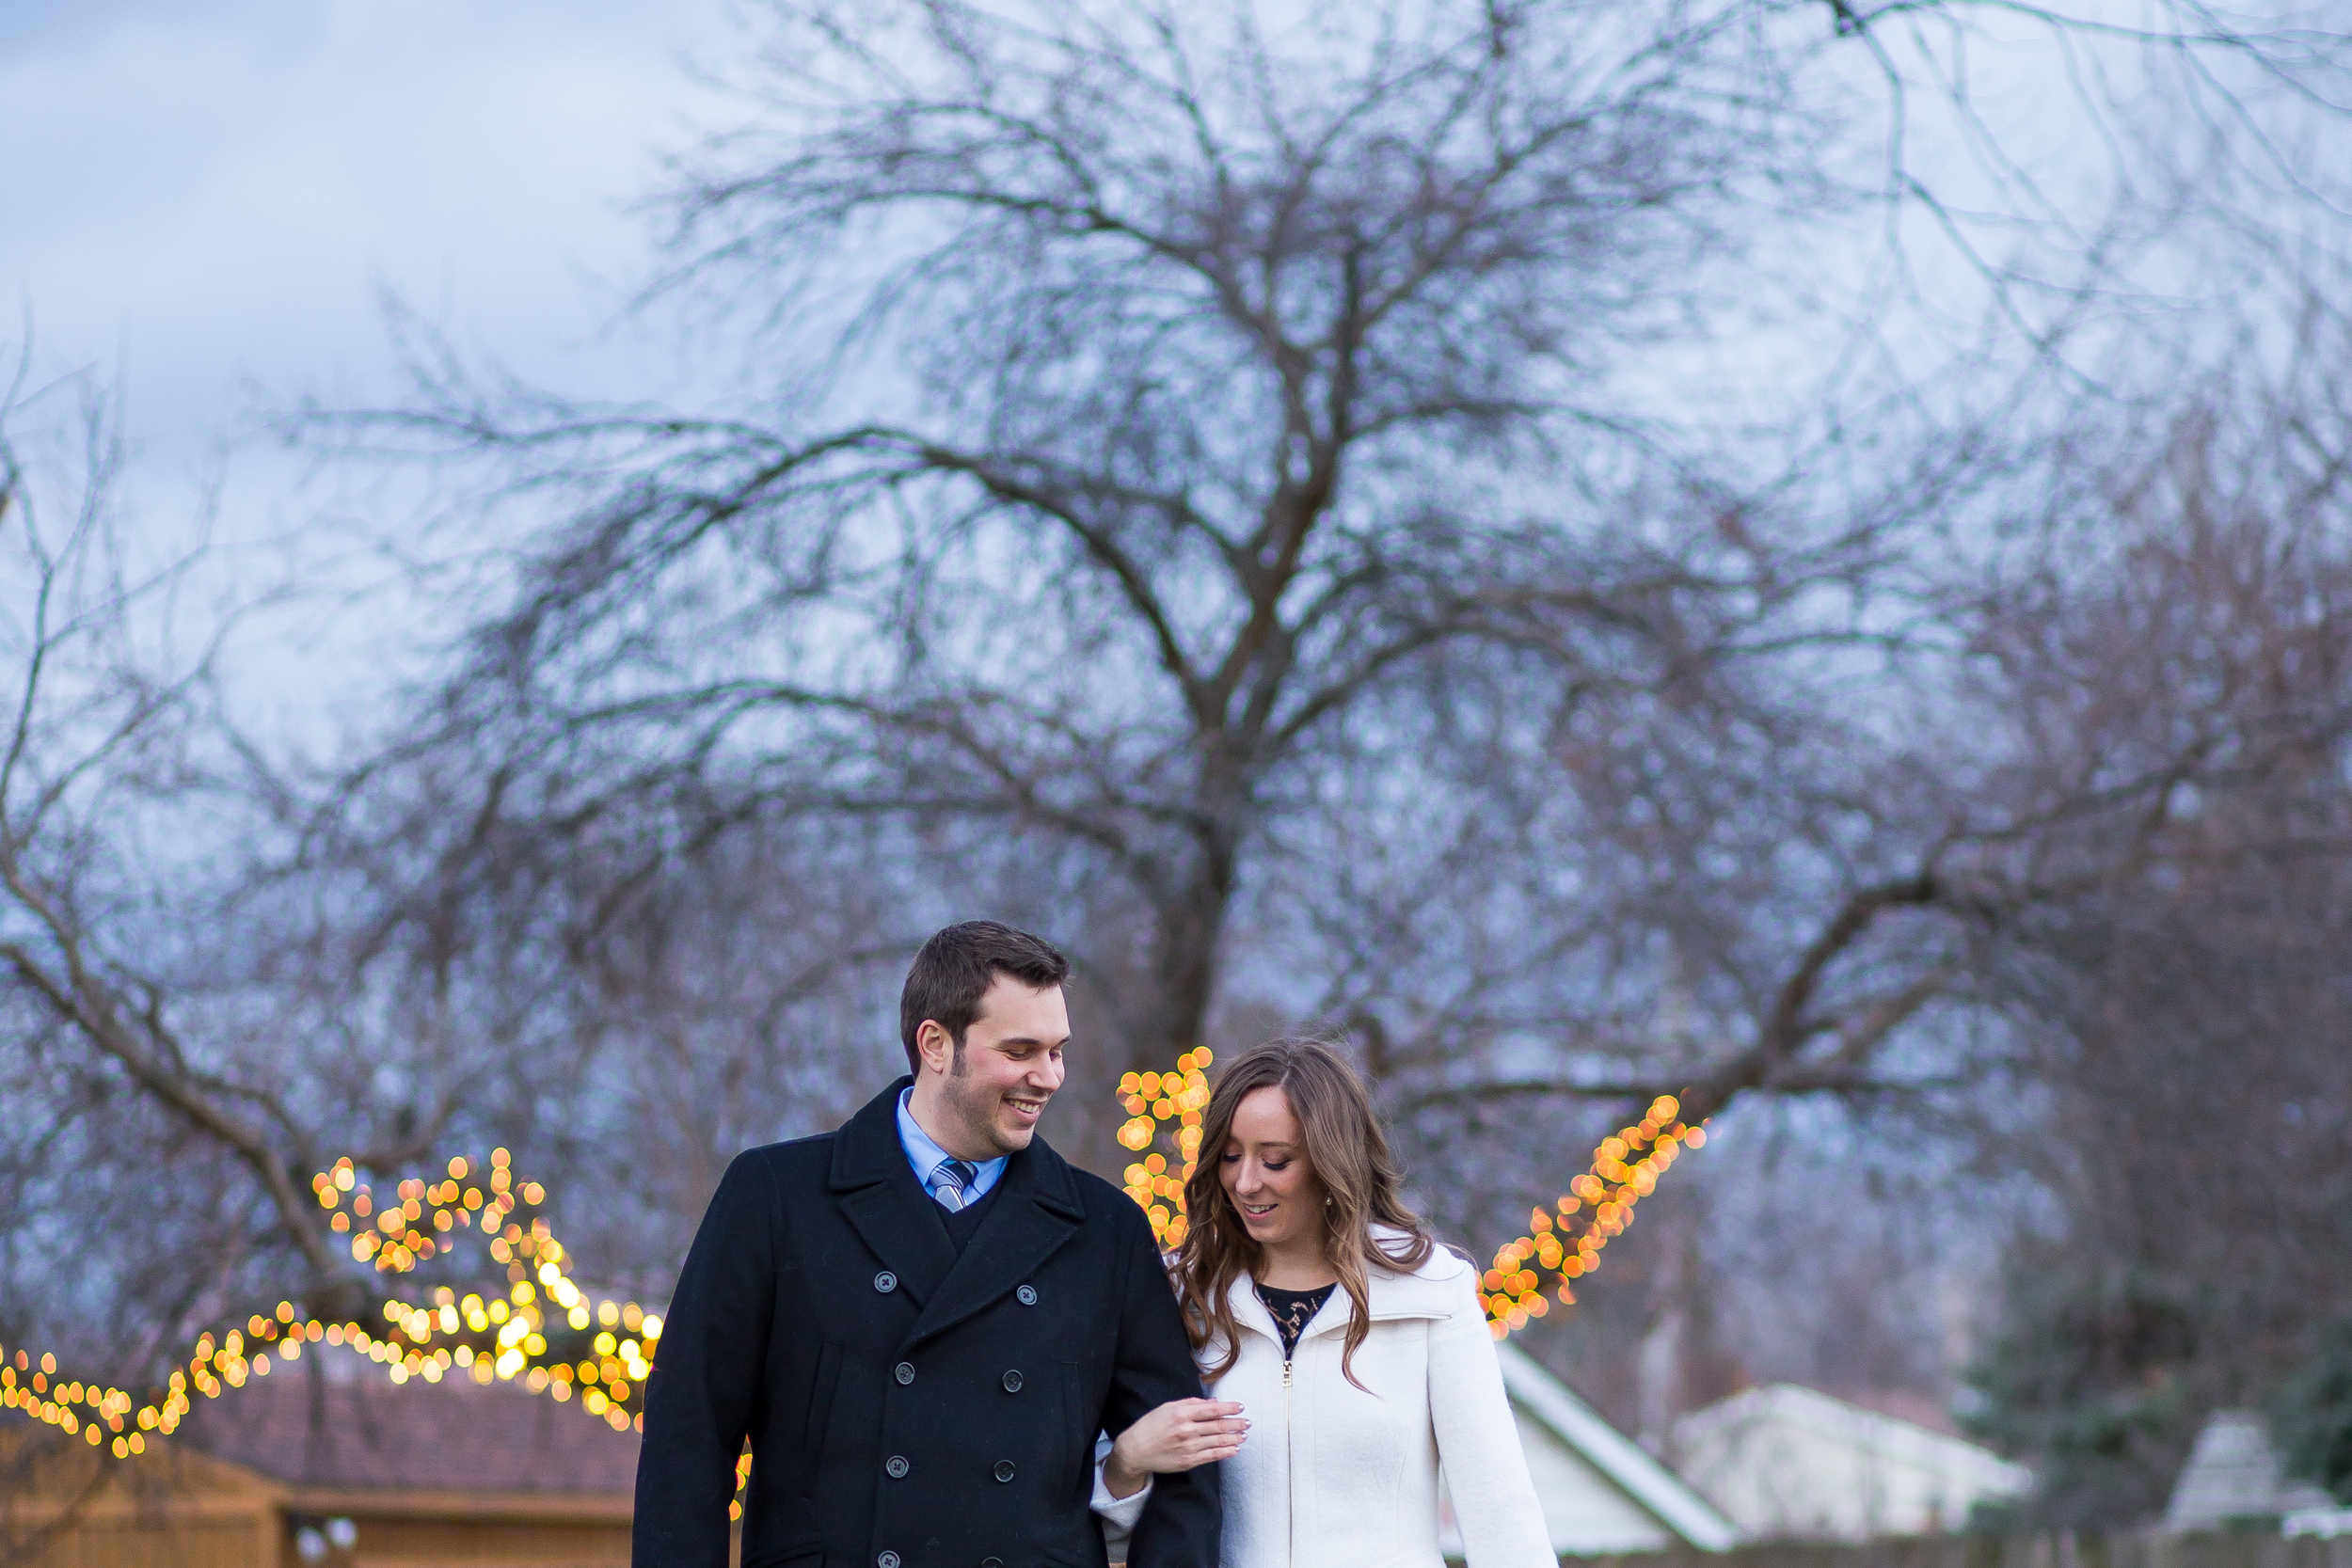 Meriel-Joe-engagement-photos-114.jpg